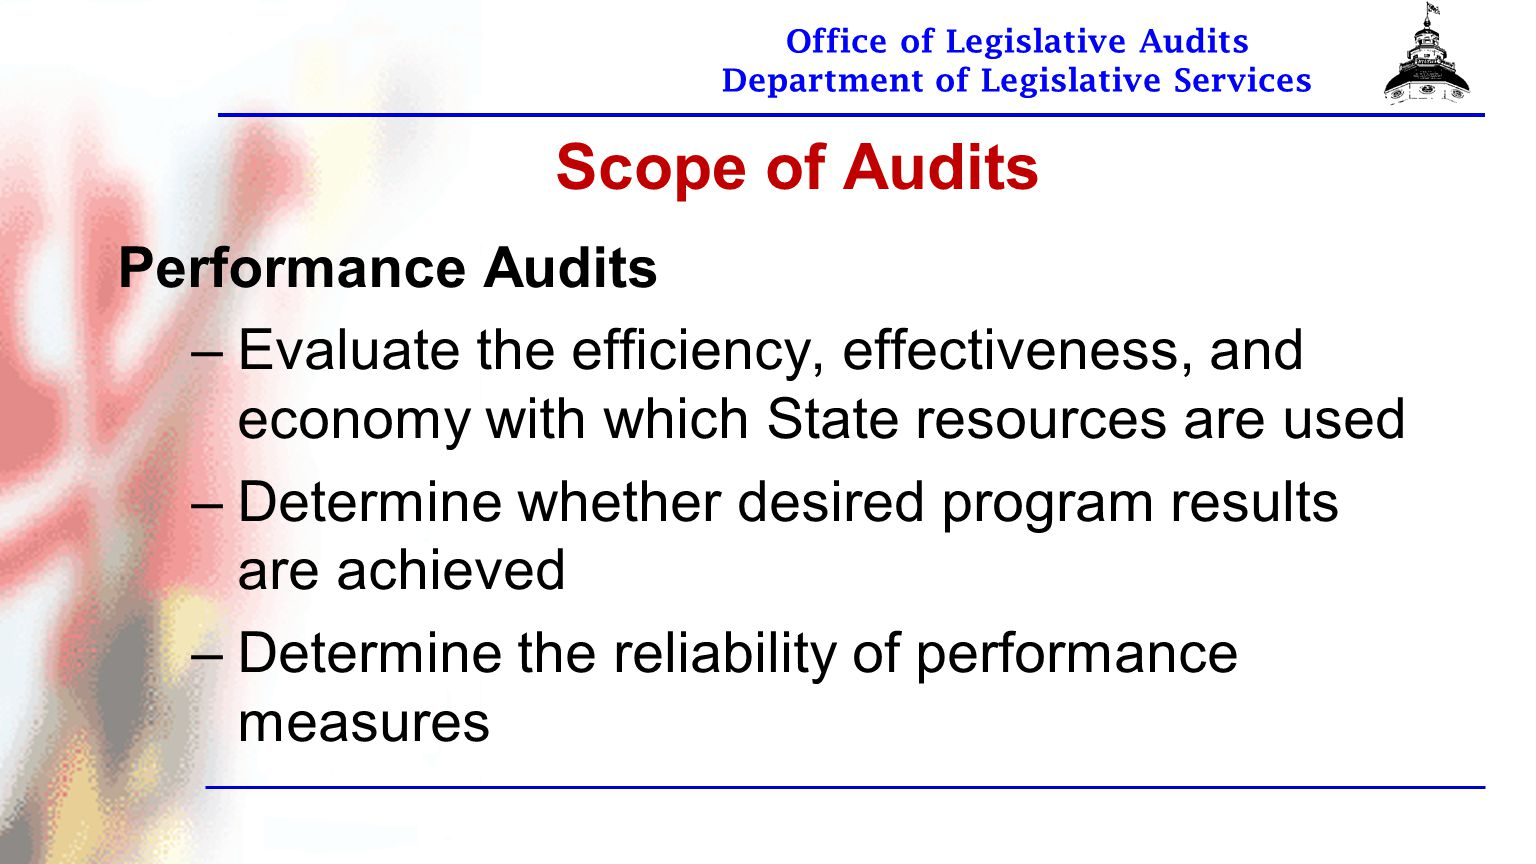 Office of Legislative Audits Department of Legislative Services OLA Fraud Hotline